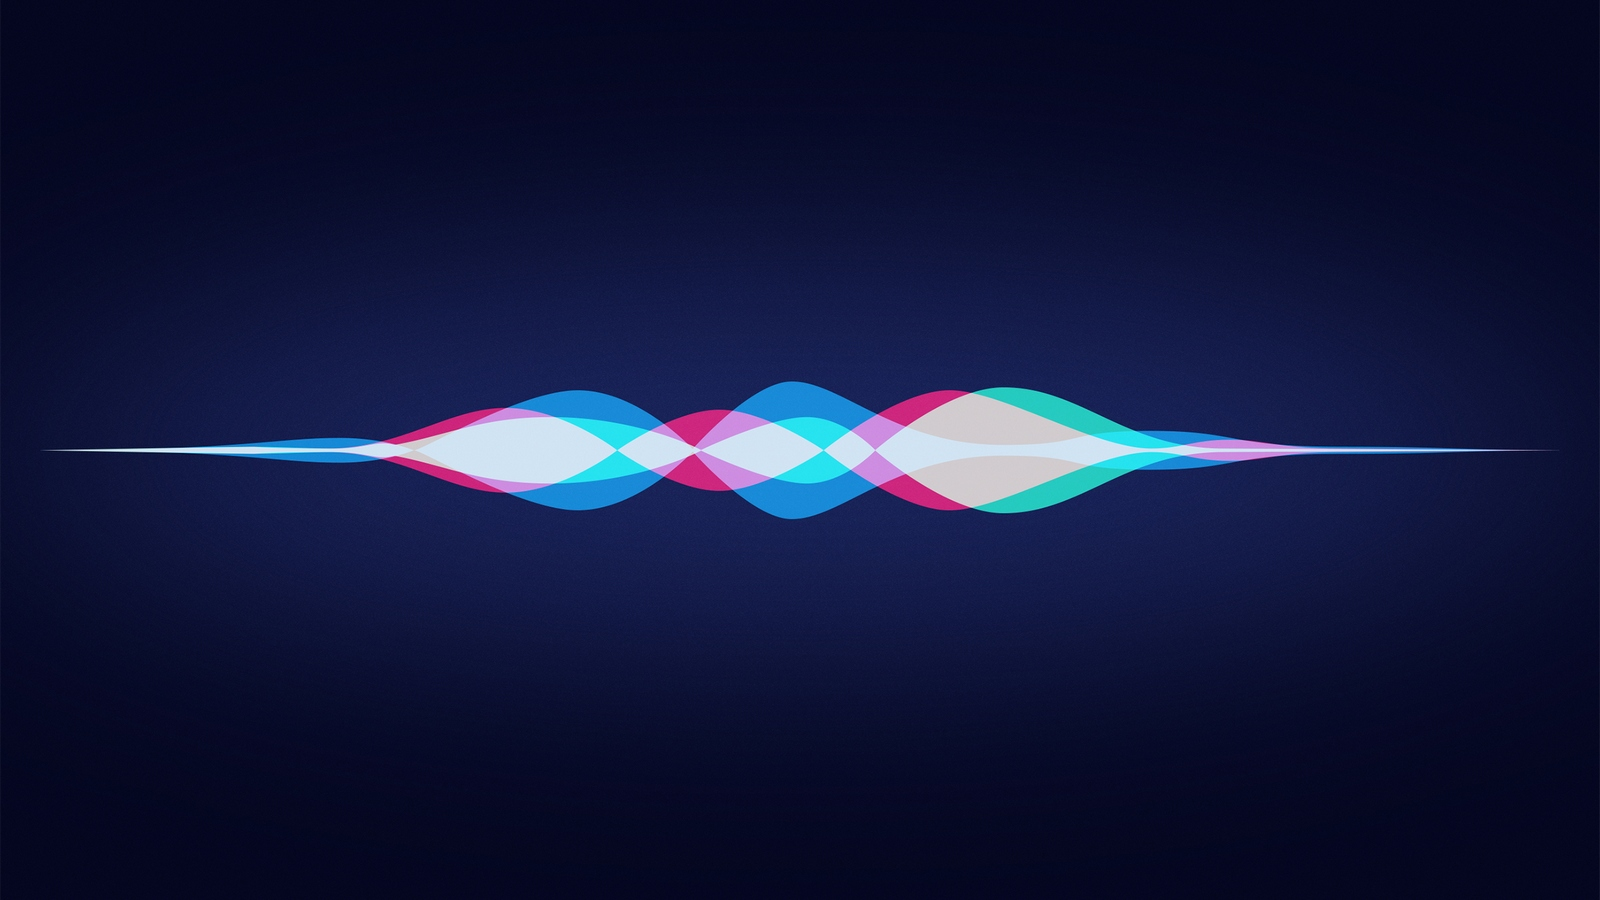 How Siri may appear in our Mac